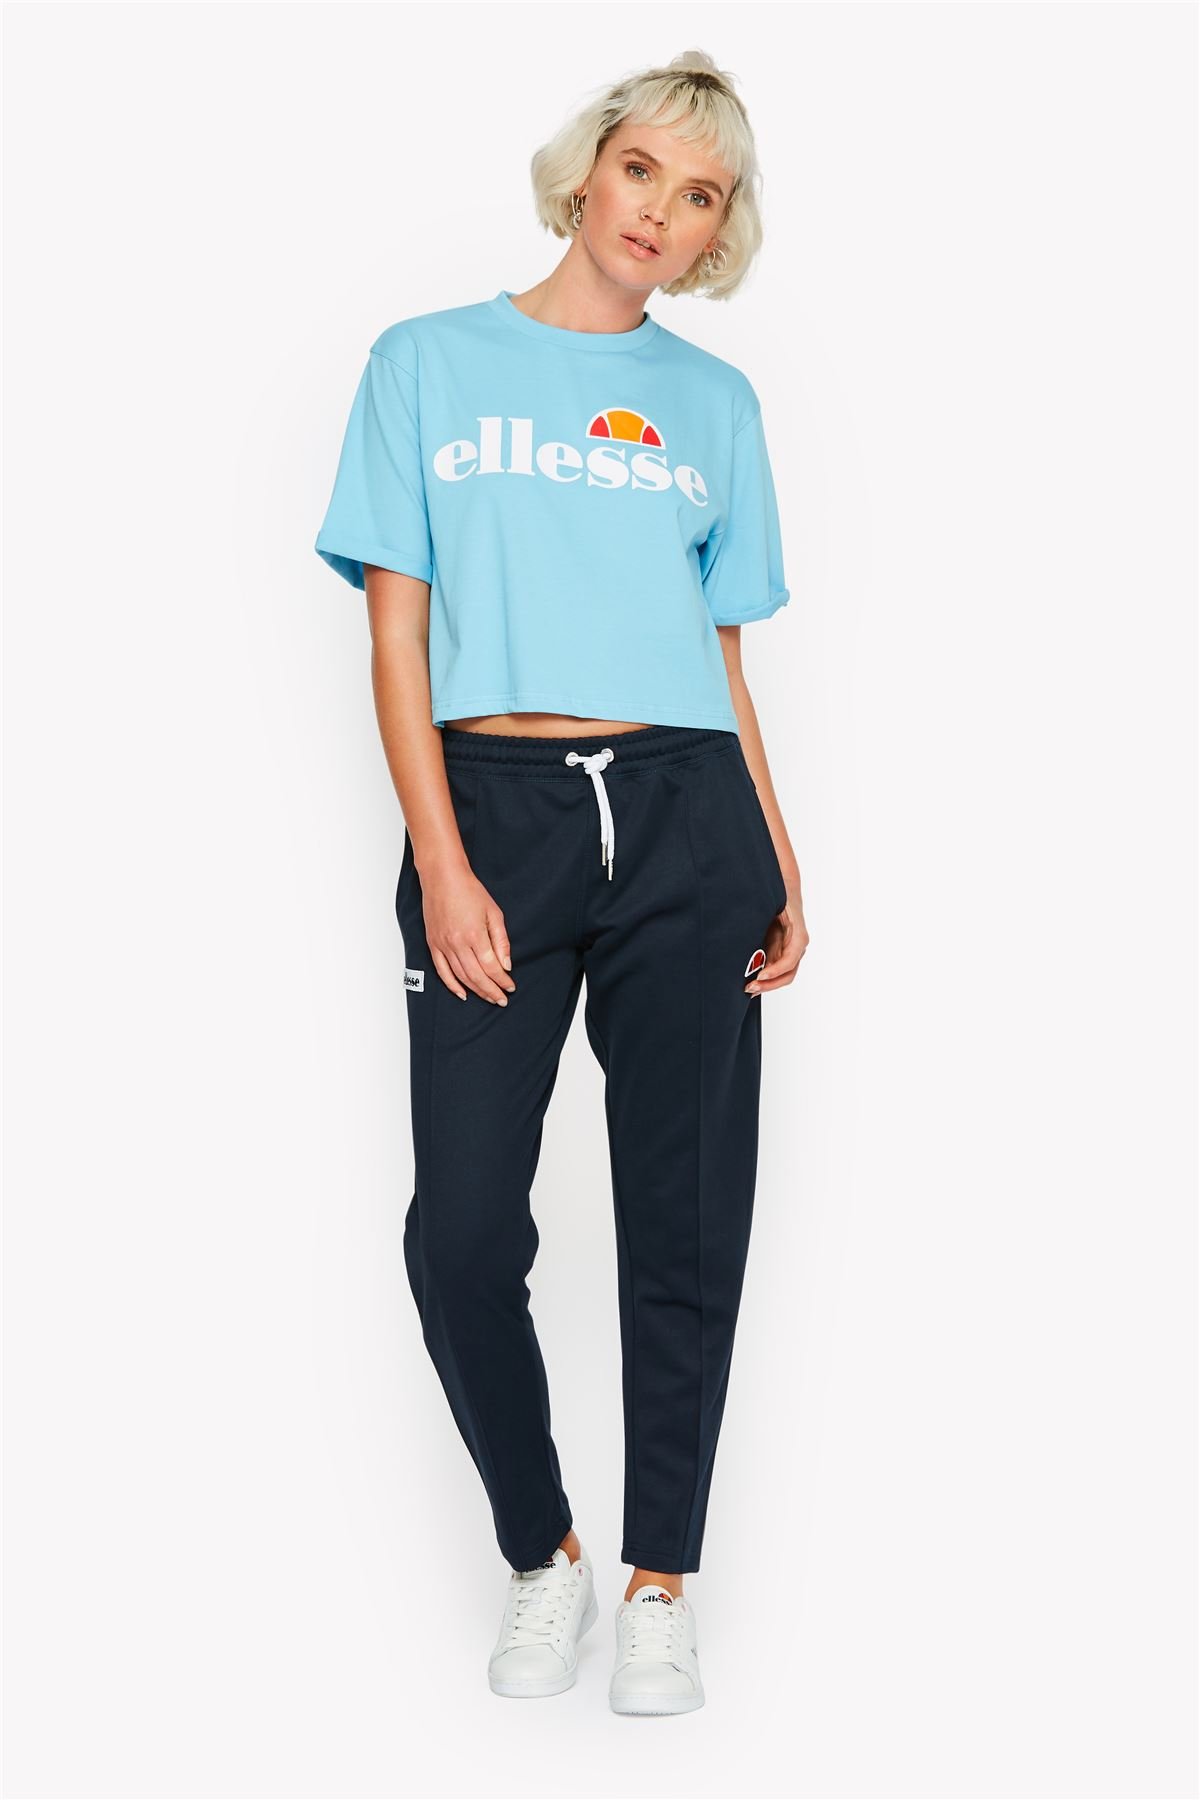 Ellesse-End-of-Line-Clearance-Sale-Bargain-Womens-Tops-T-Shirts-Free-UK-Ship thumbnail 5